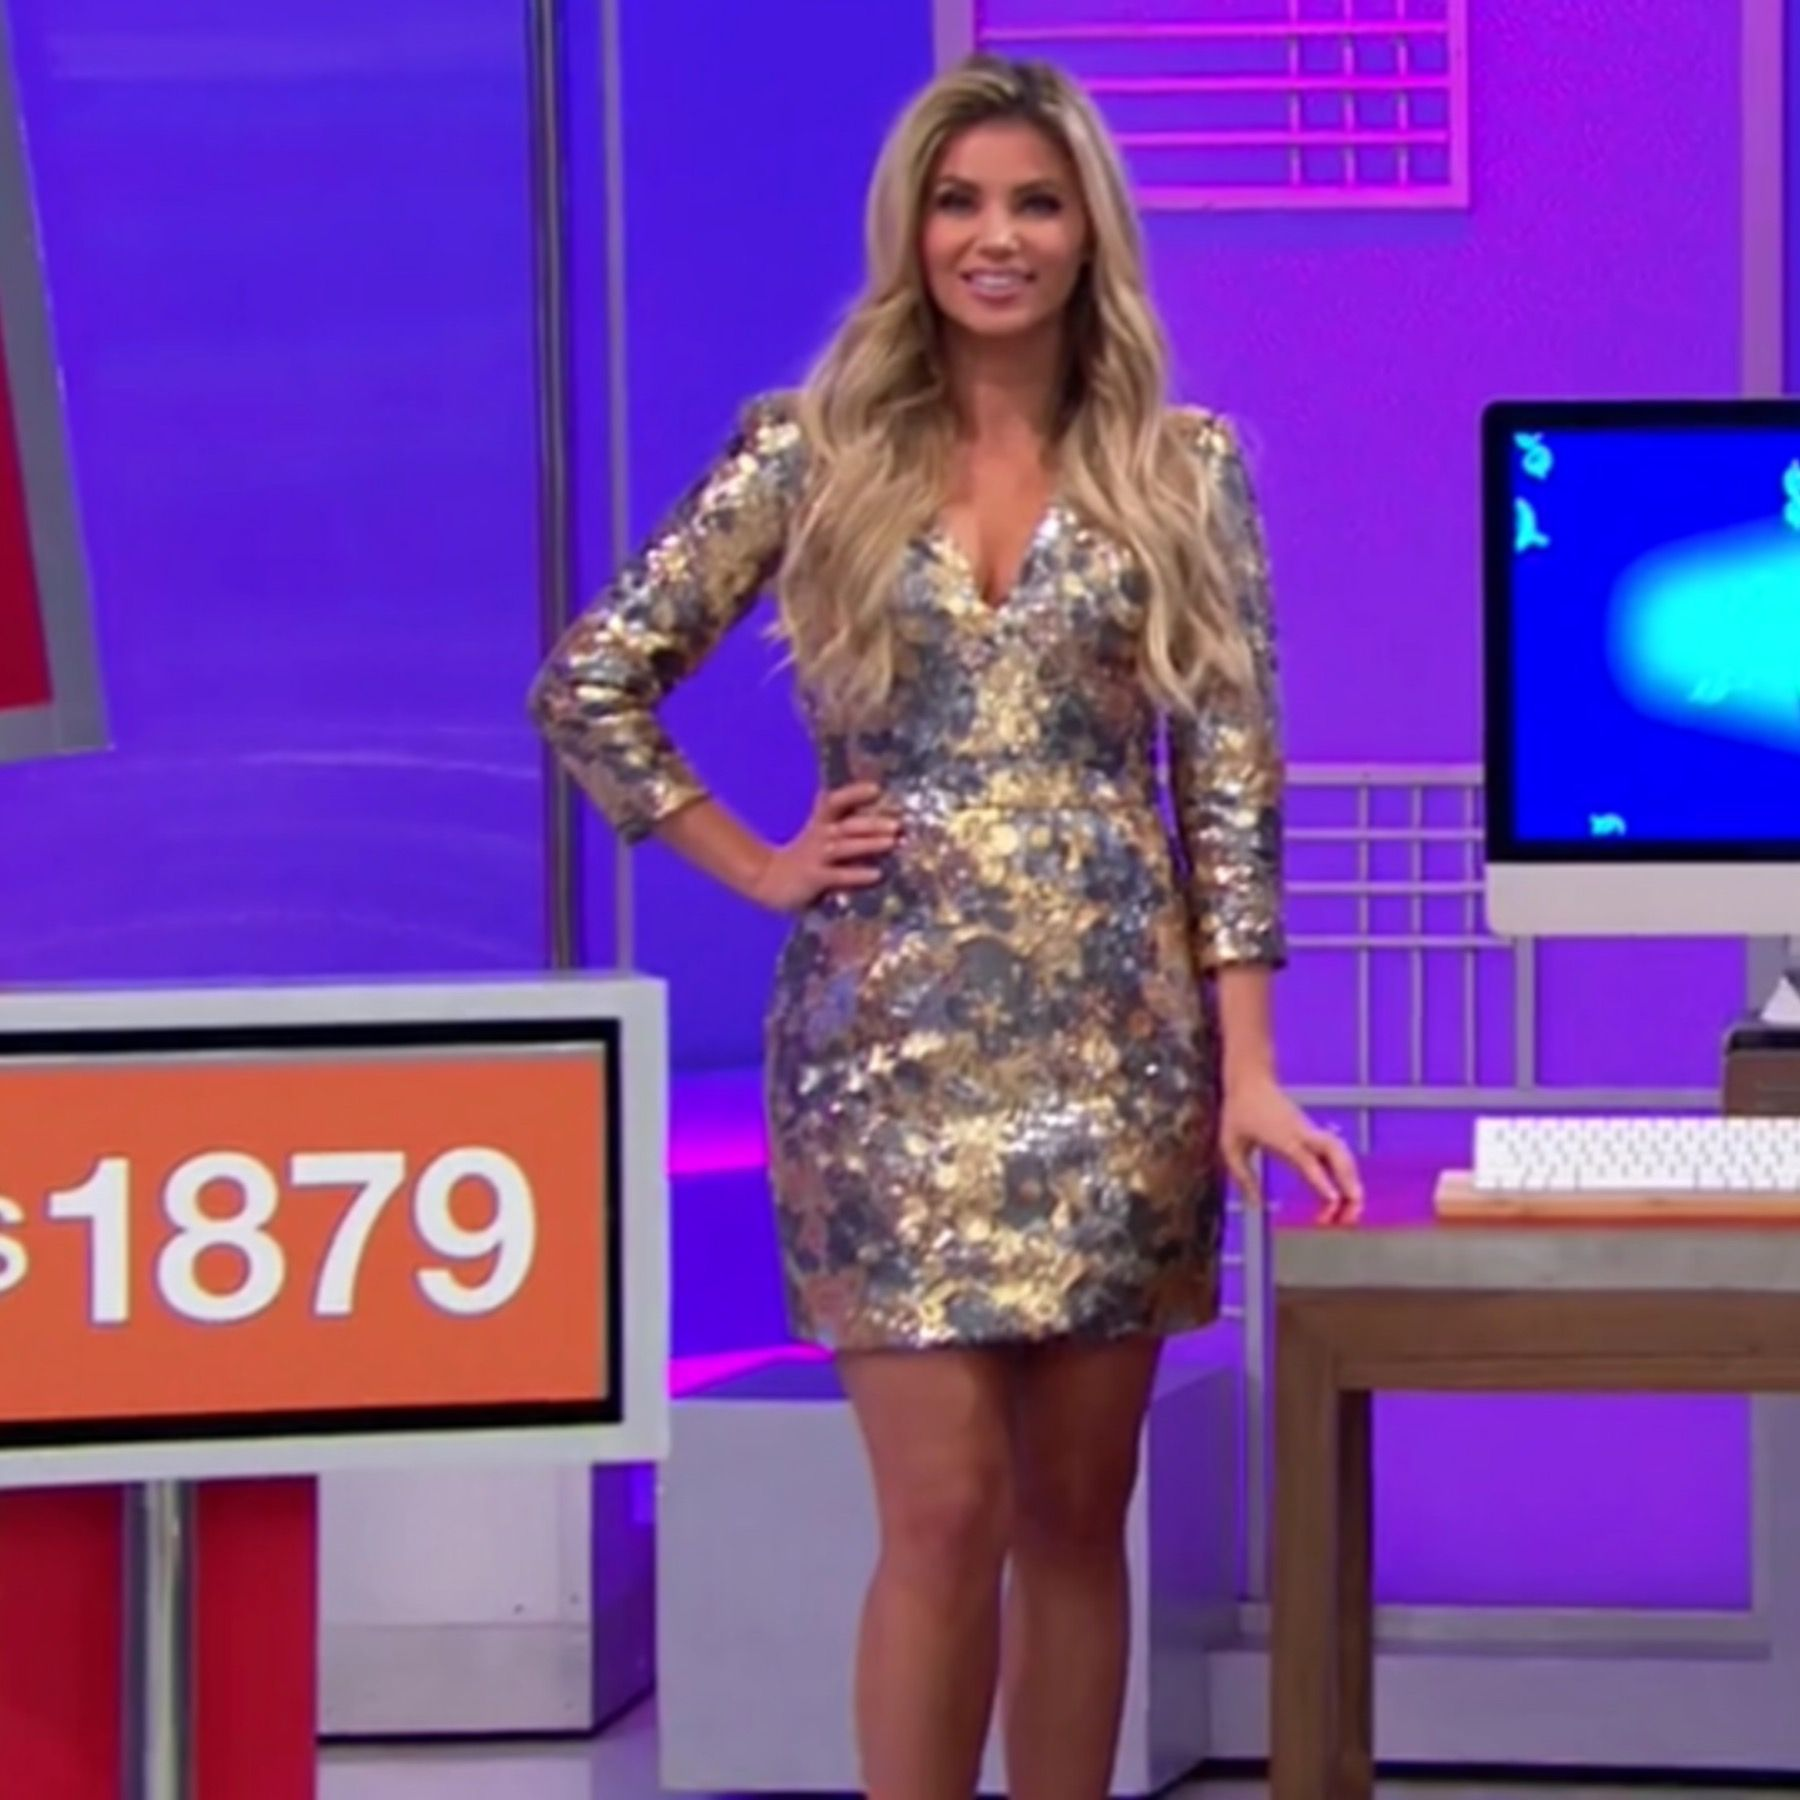 Amber Lancaster From The Price Is Right amber lancaster - the price is right (4/3/2019) ♥️ | amber